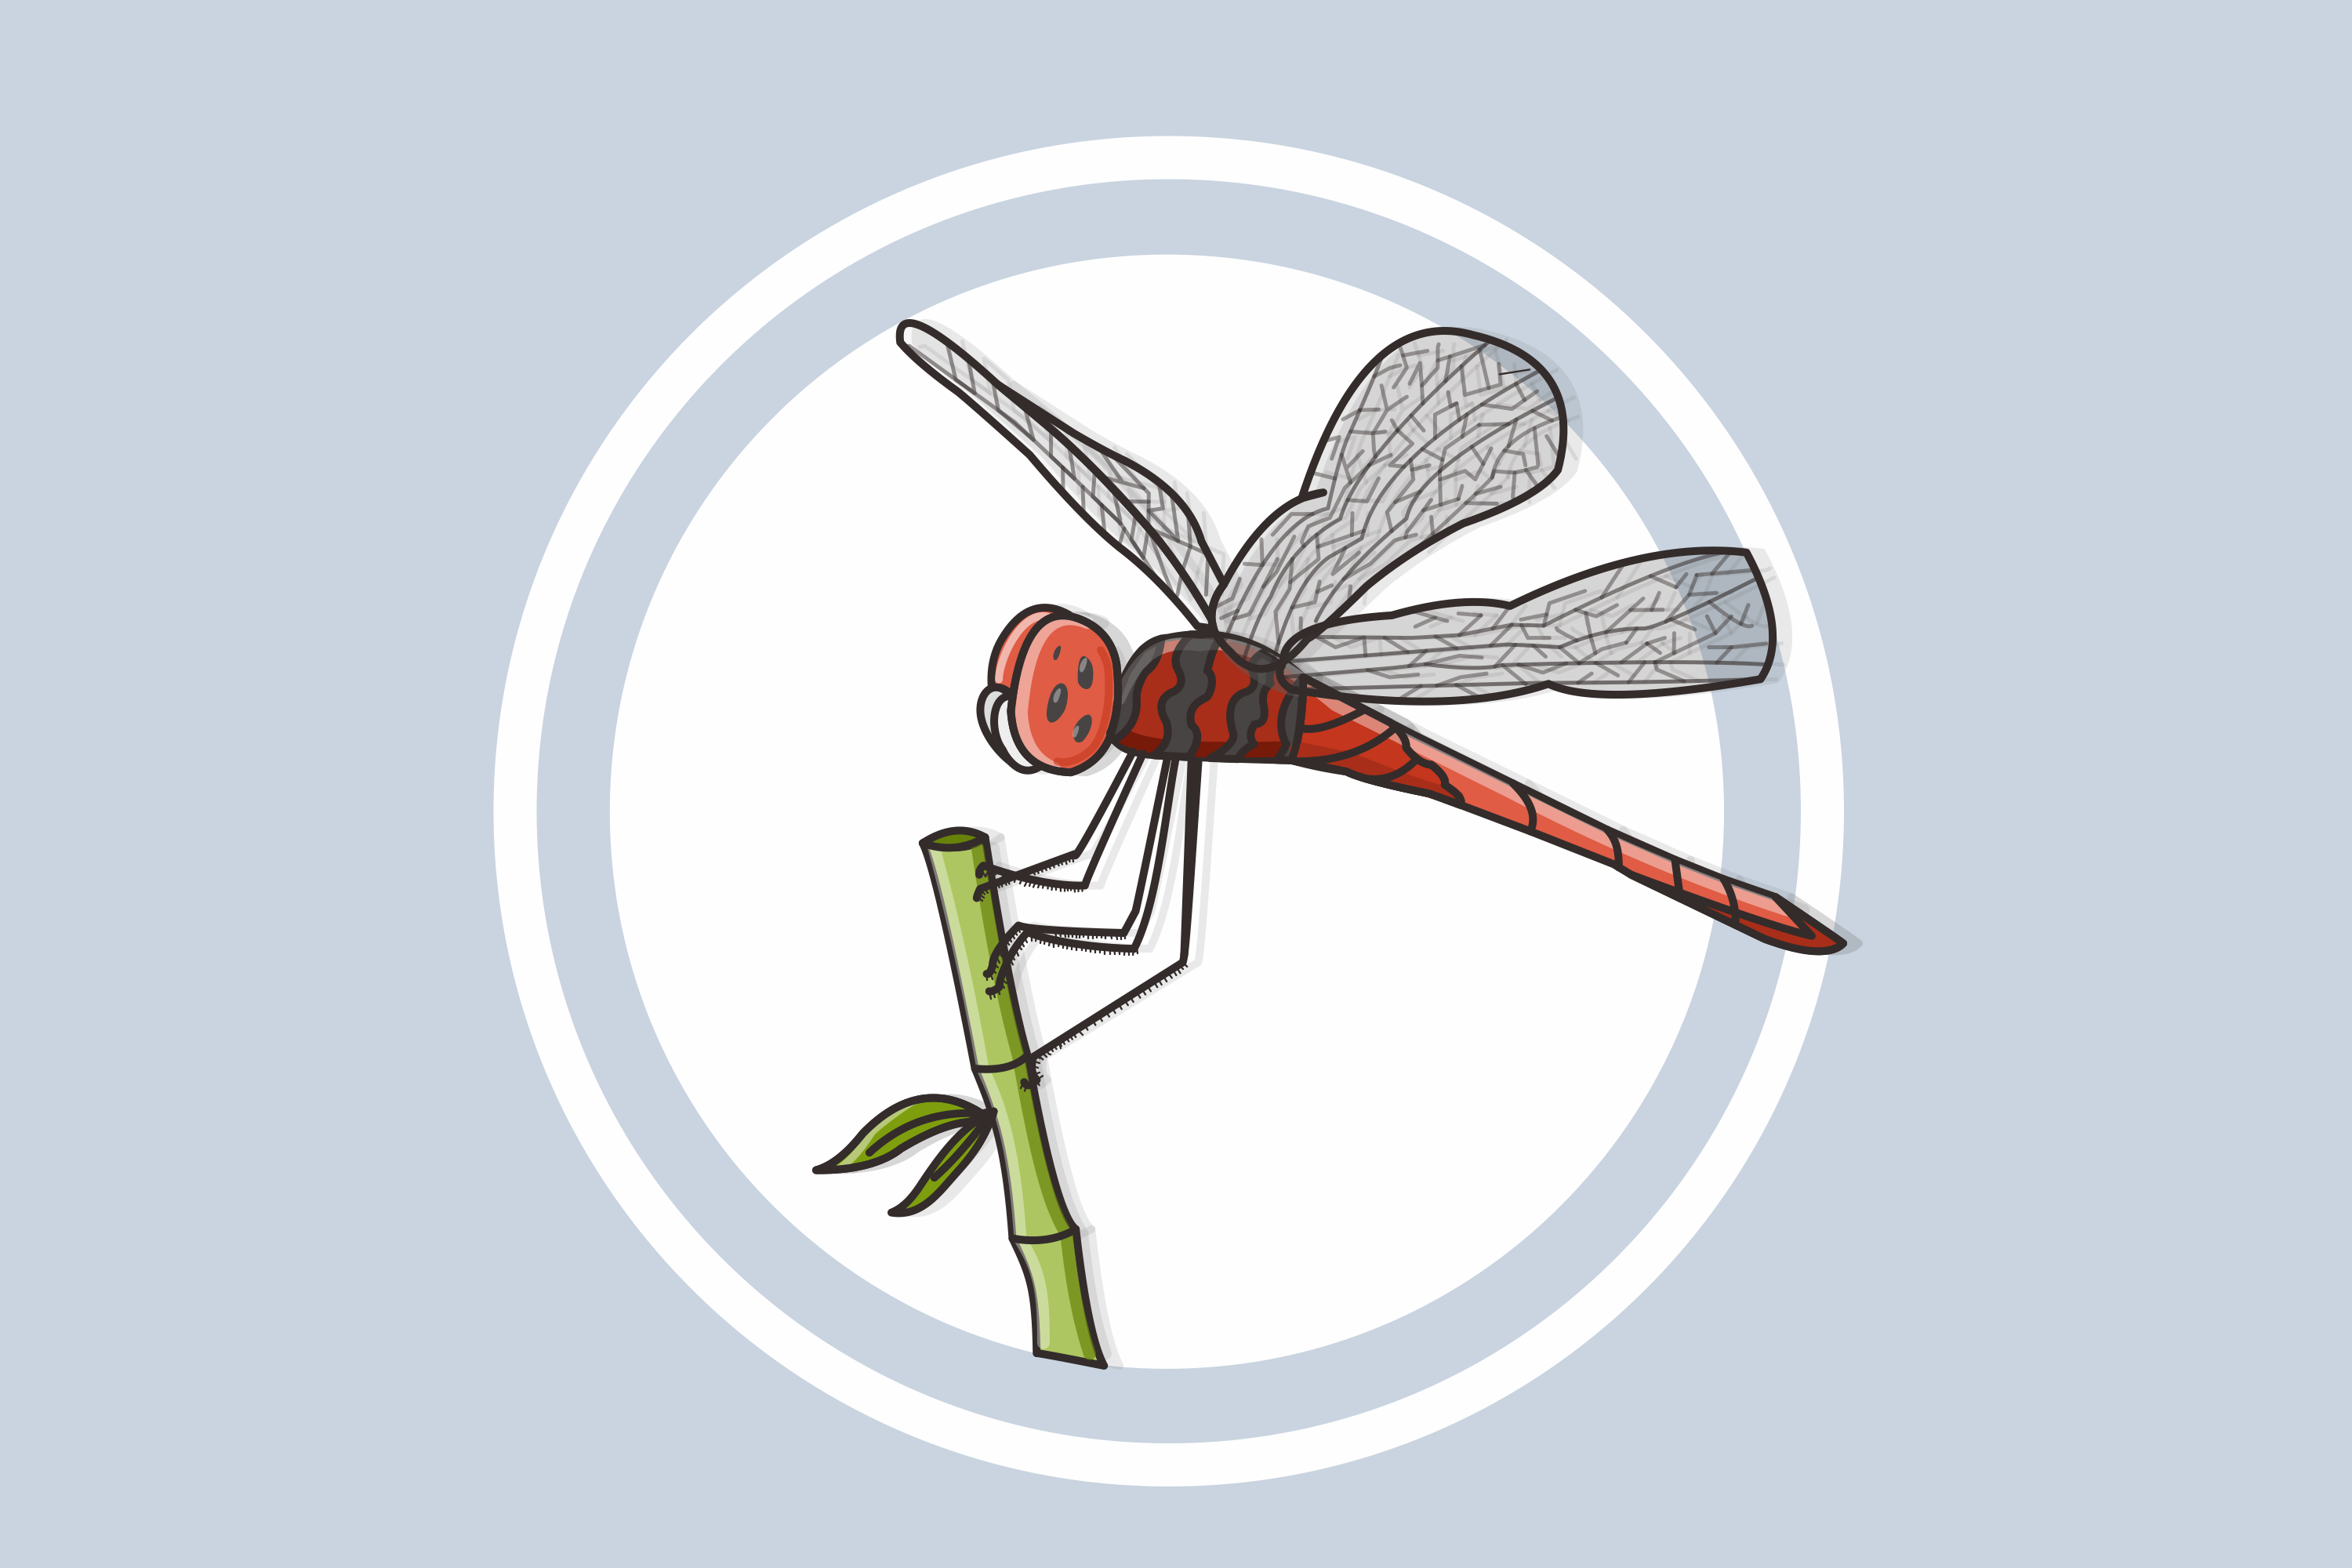 Download Free Dragonfly Vector Illustration Graphic By Nuraisyahamalia1729 for Cricut Explore, Silhouette and other cutting machines.